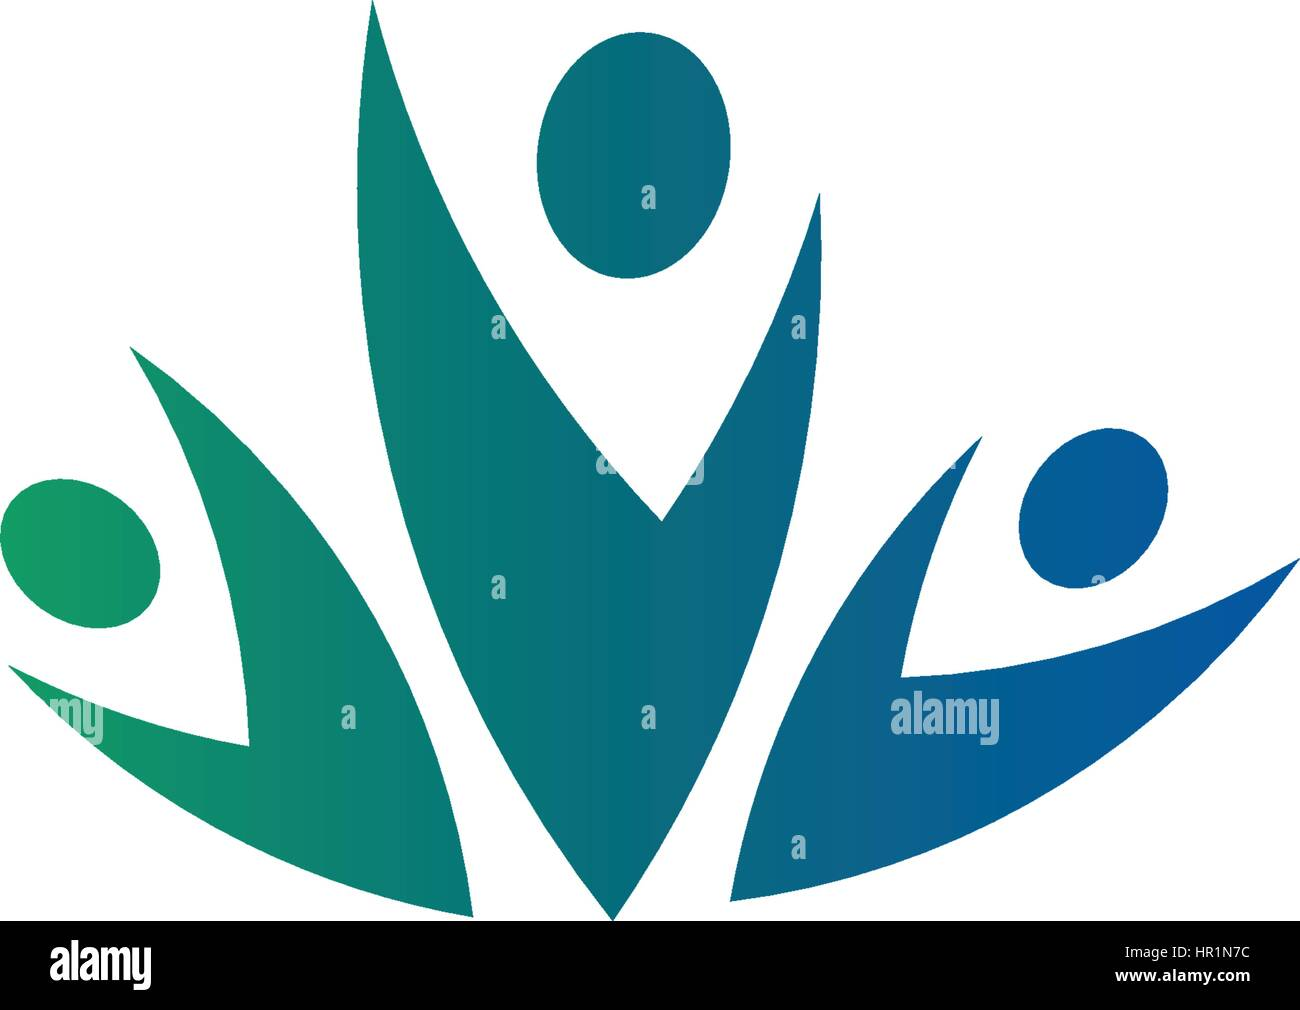 isolated abstract blue and green color group of three people logo on